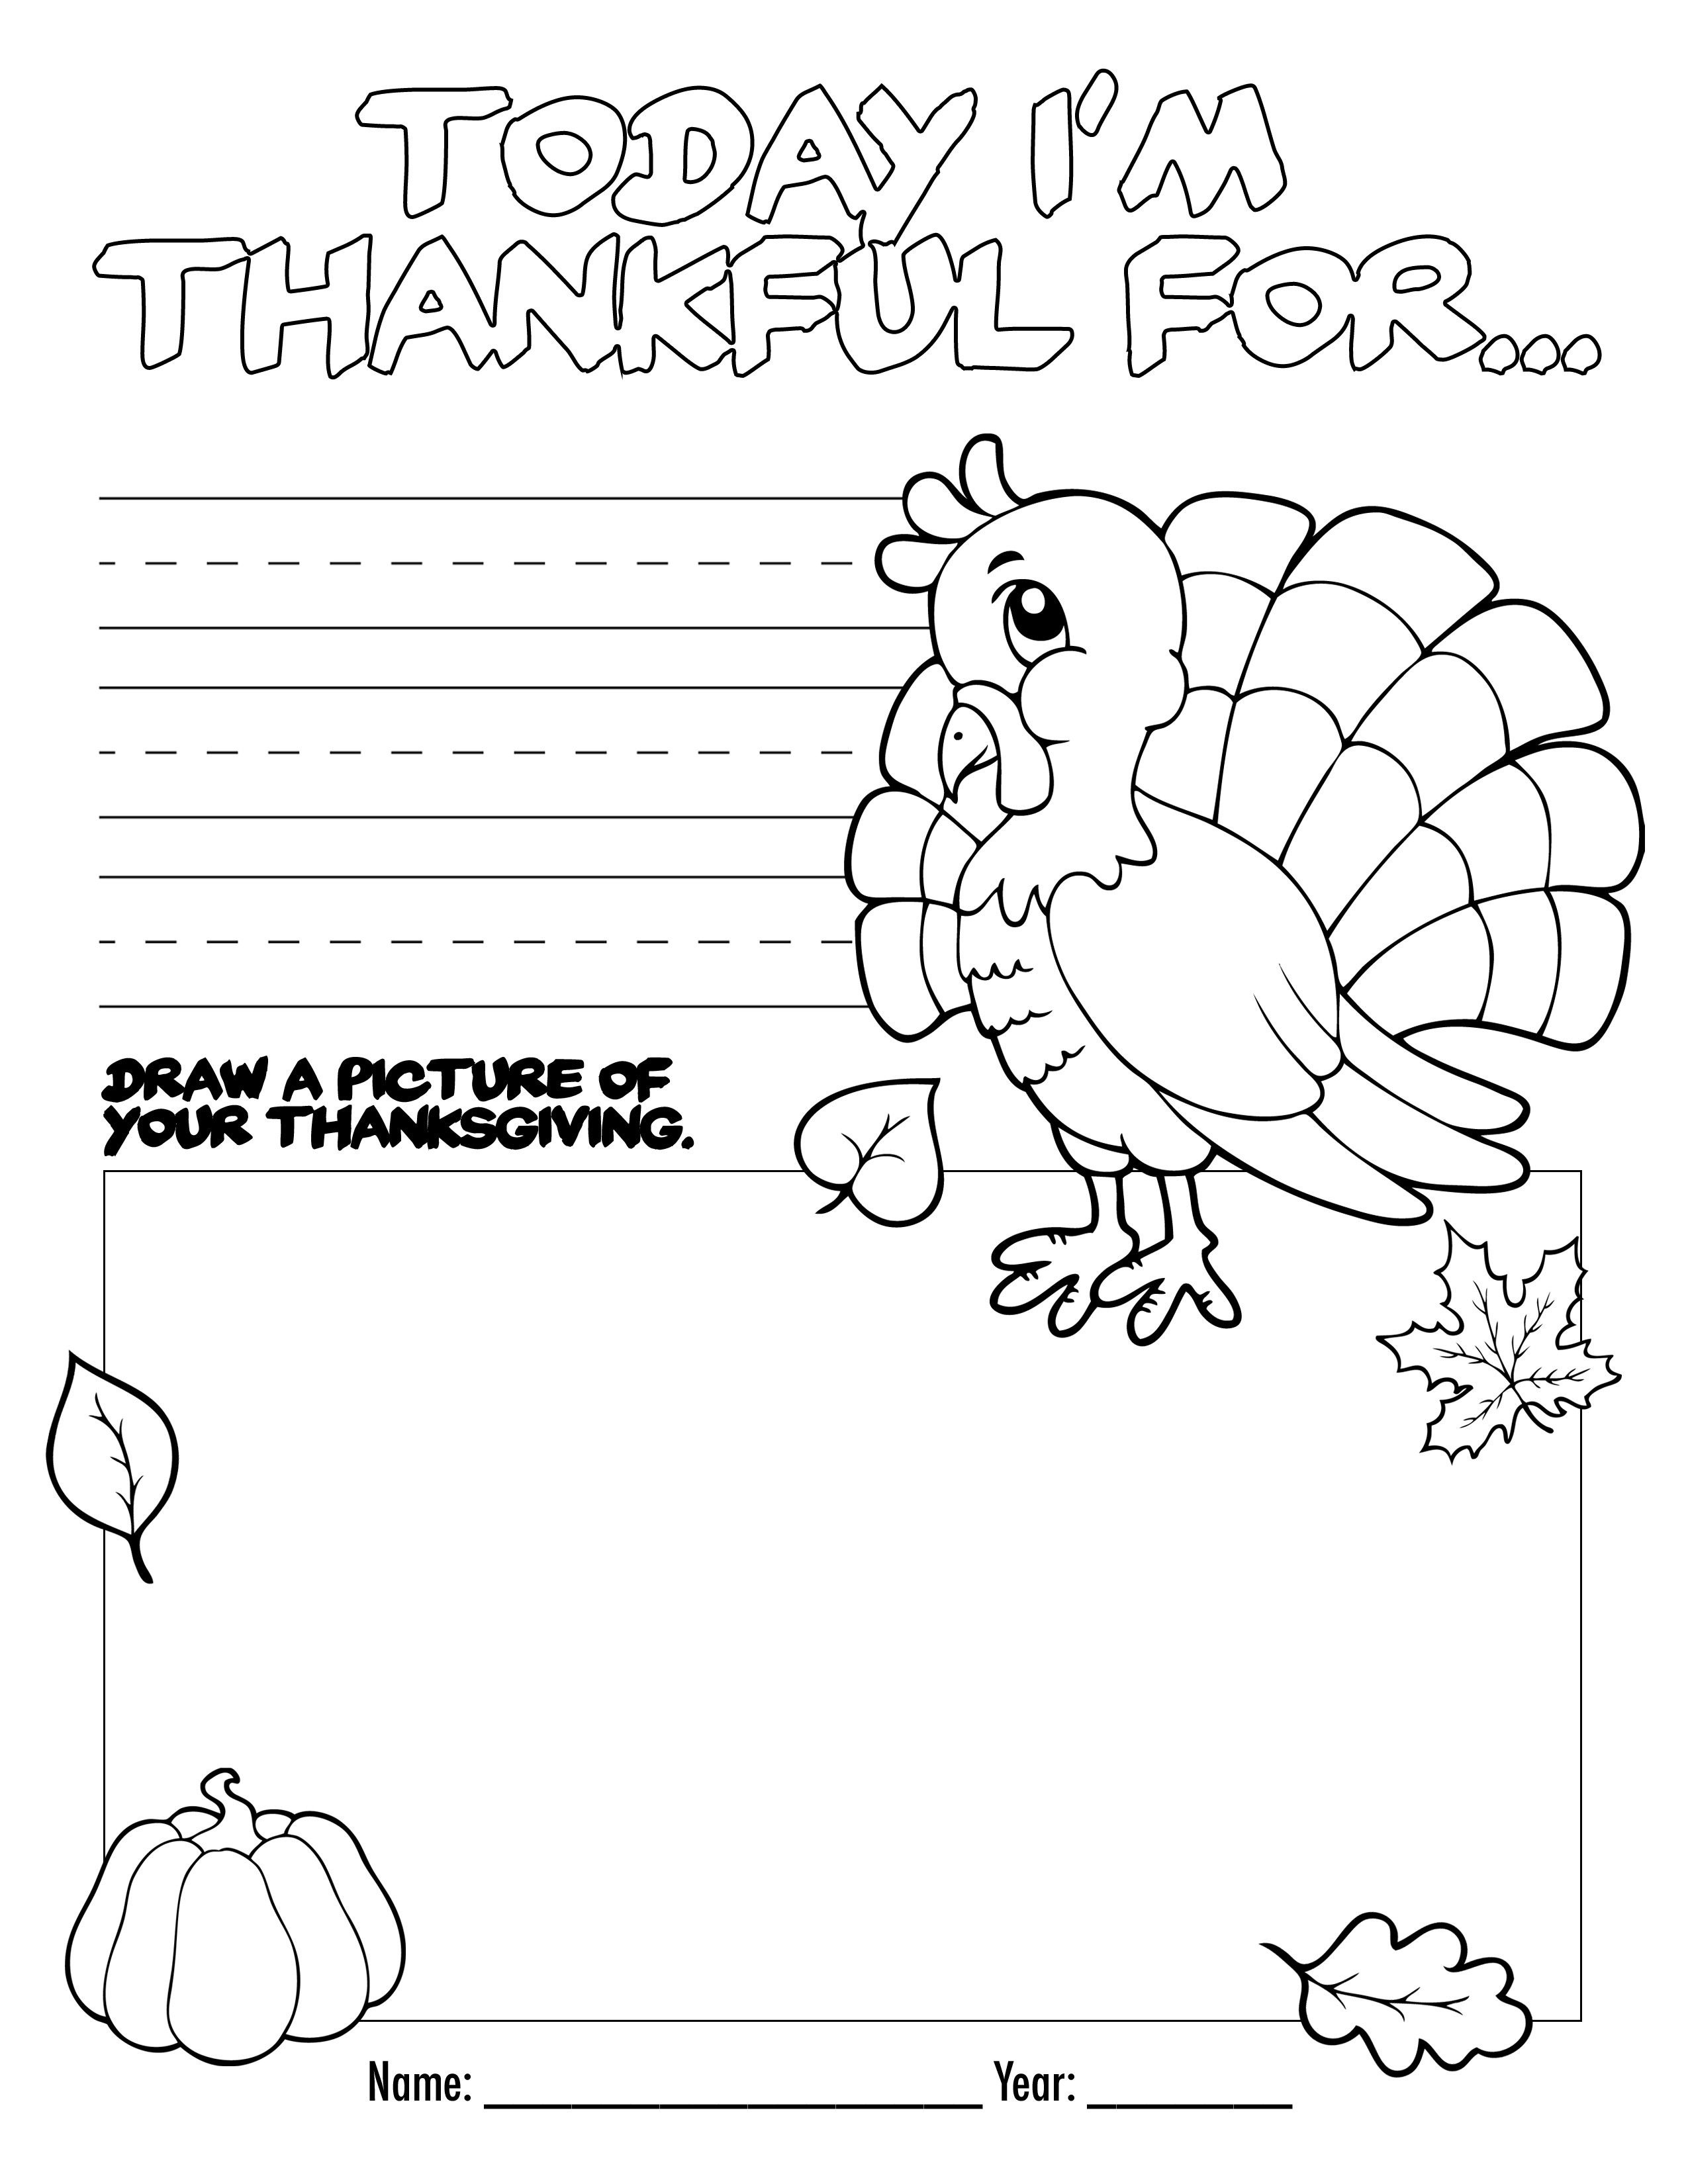 Free Printable Activities For Kindergarten Thanksgiving | Printable - Free Printable Kindergarten Thanksgiving Activities